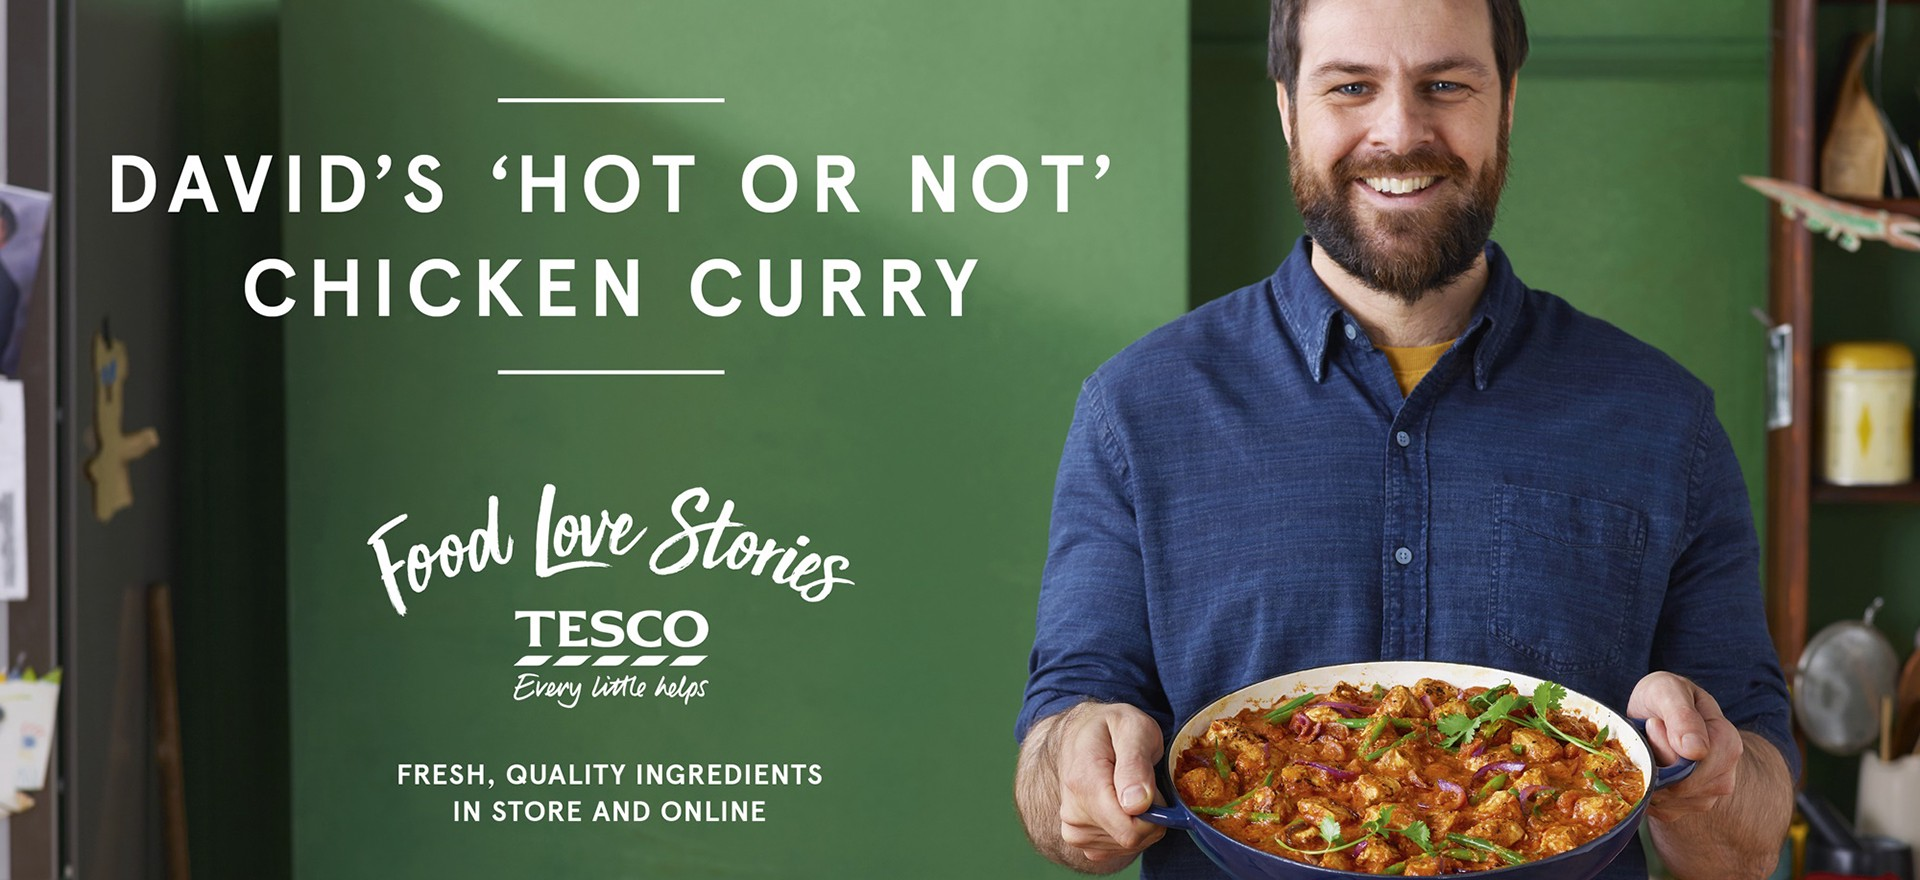 Tesco-Food-Love-Stories-marketing-example